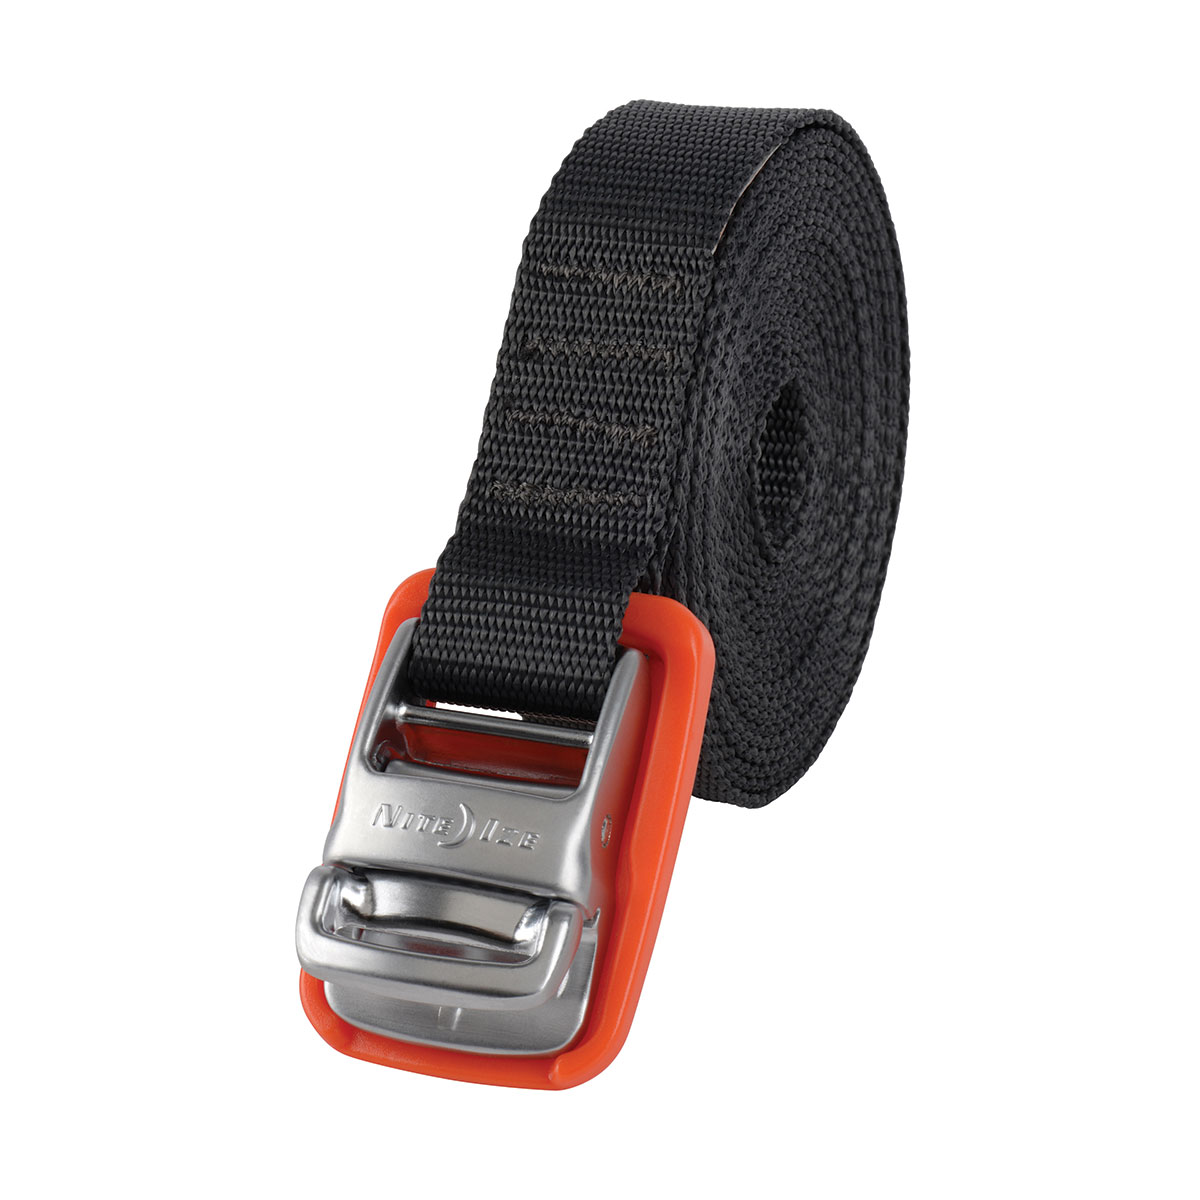 CamJam Tie Down Strap 12 FT - New Design